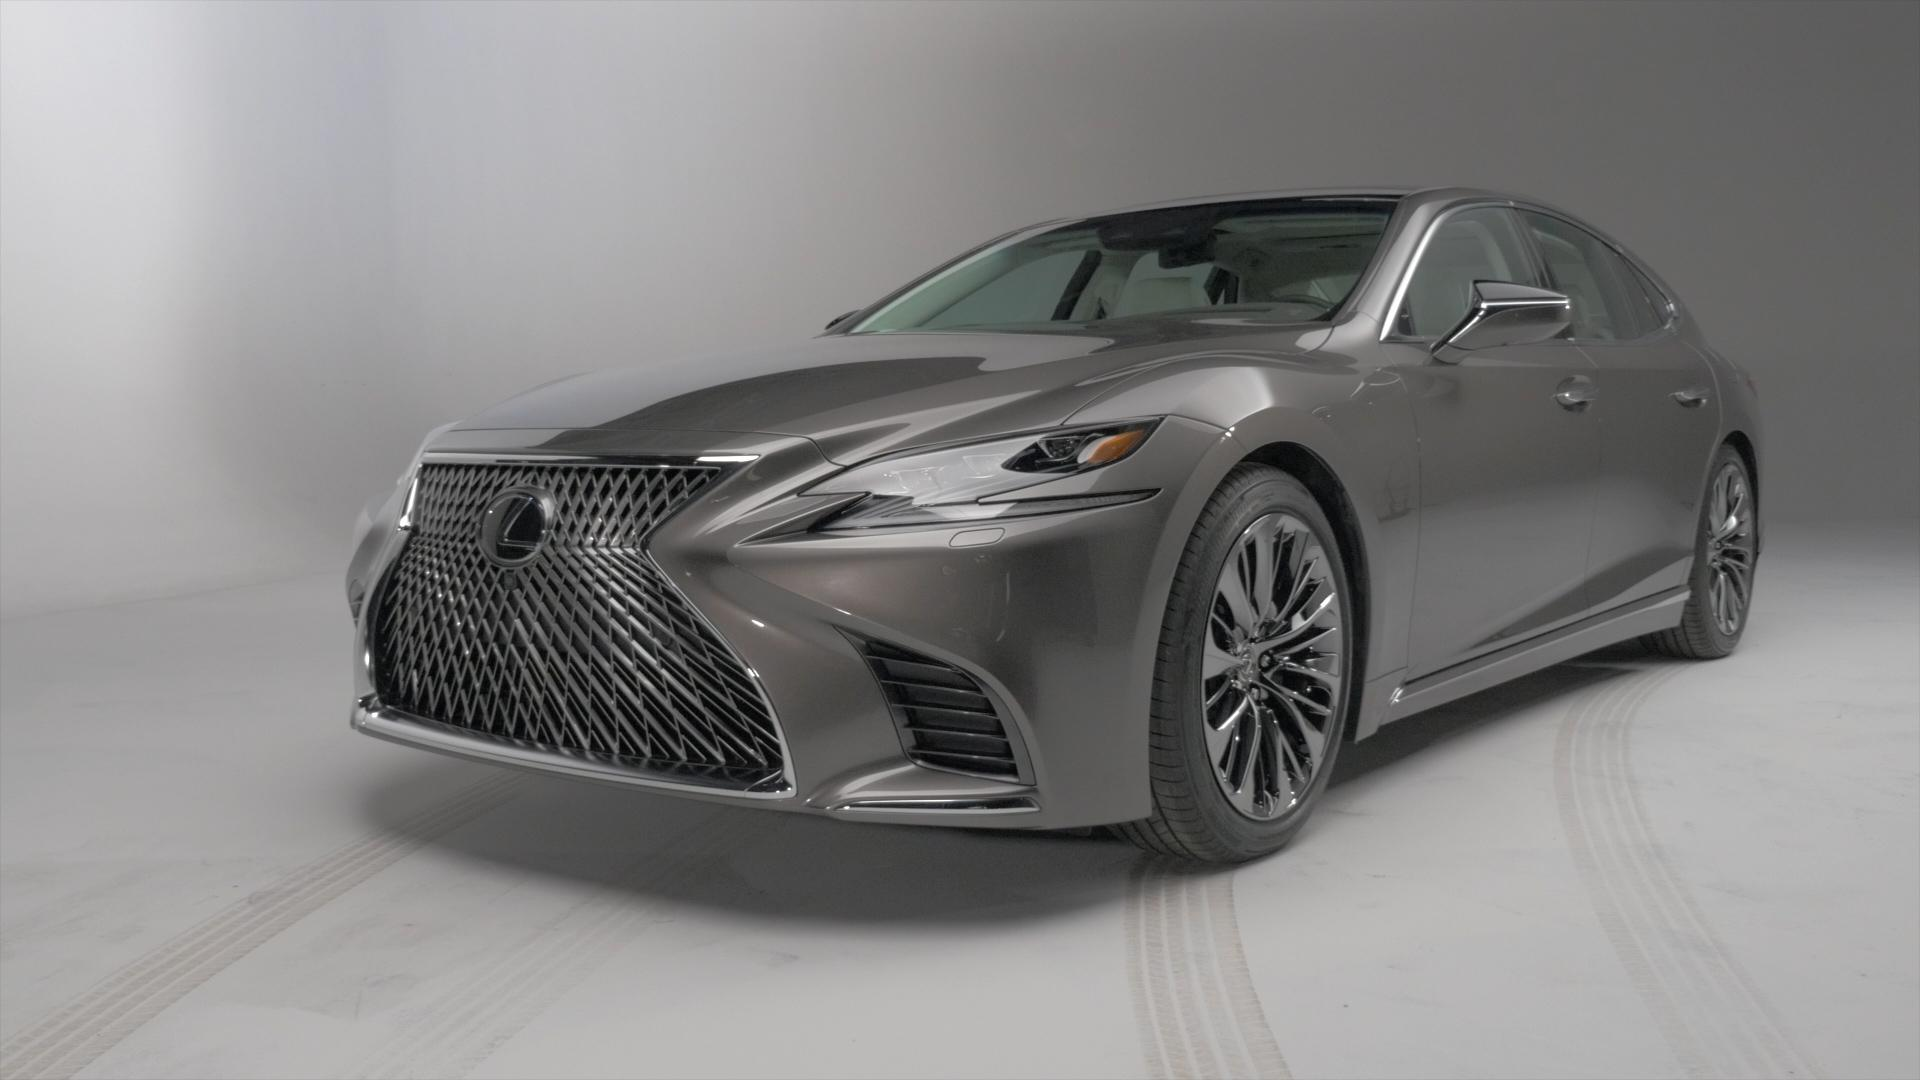 2019 Lexus Es 350 And Es 300h Get New Styling Platform And Tech